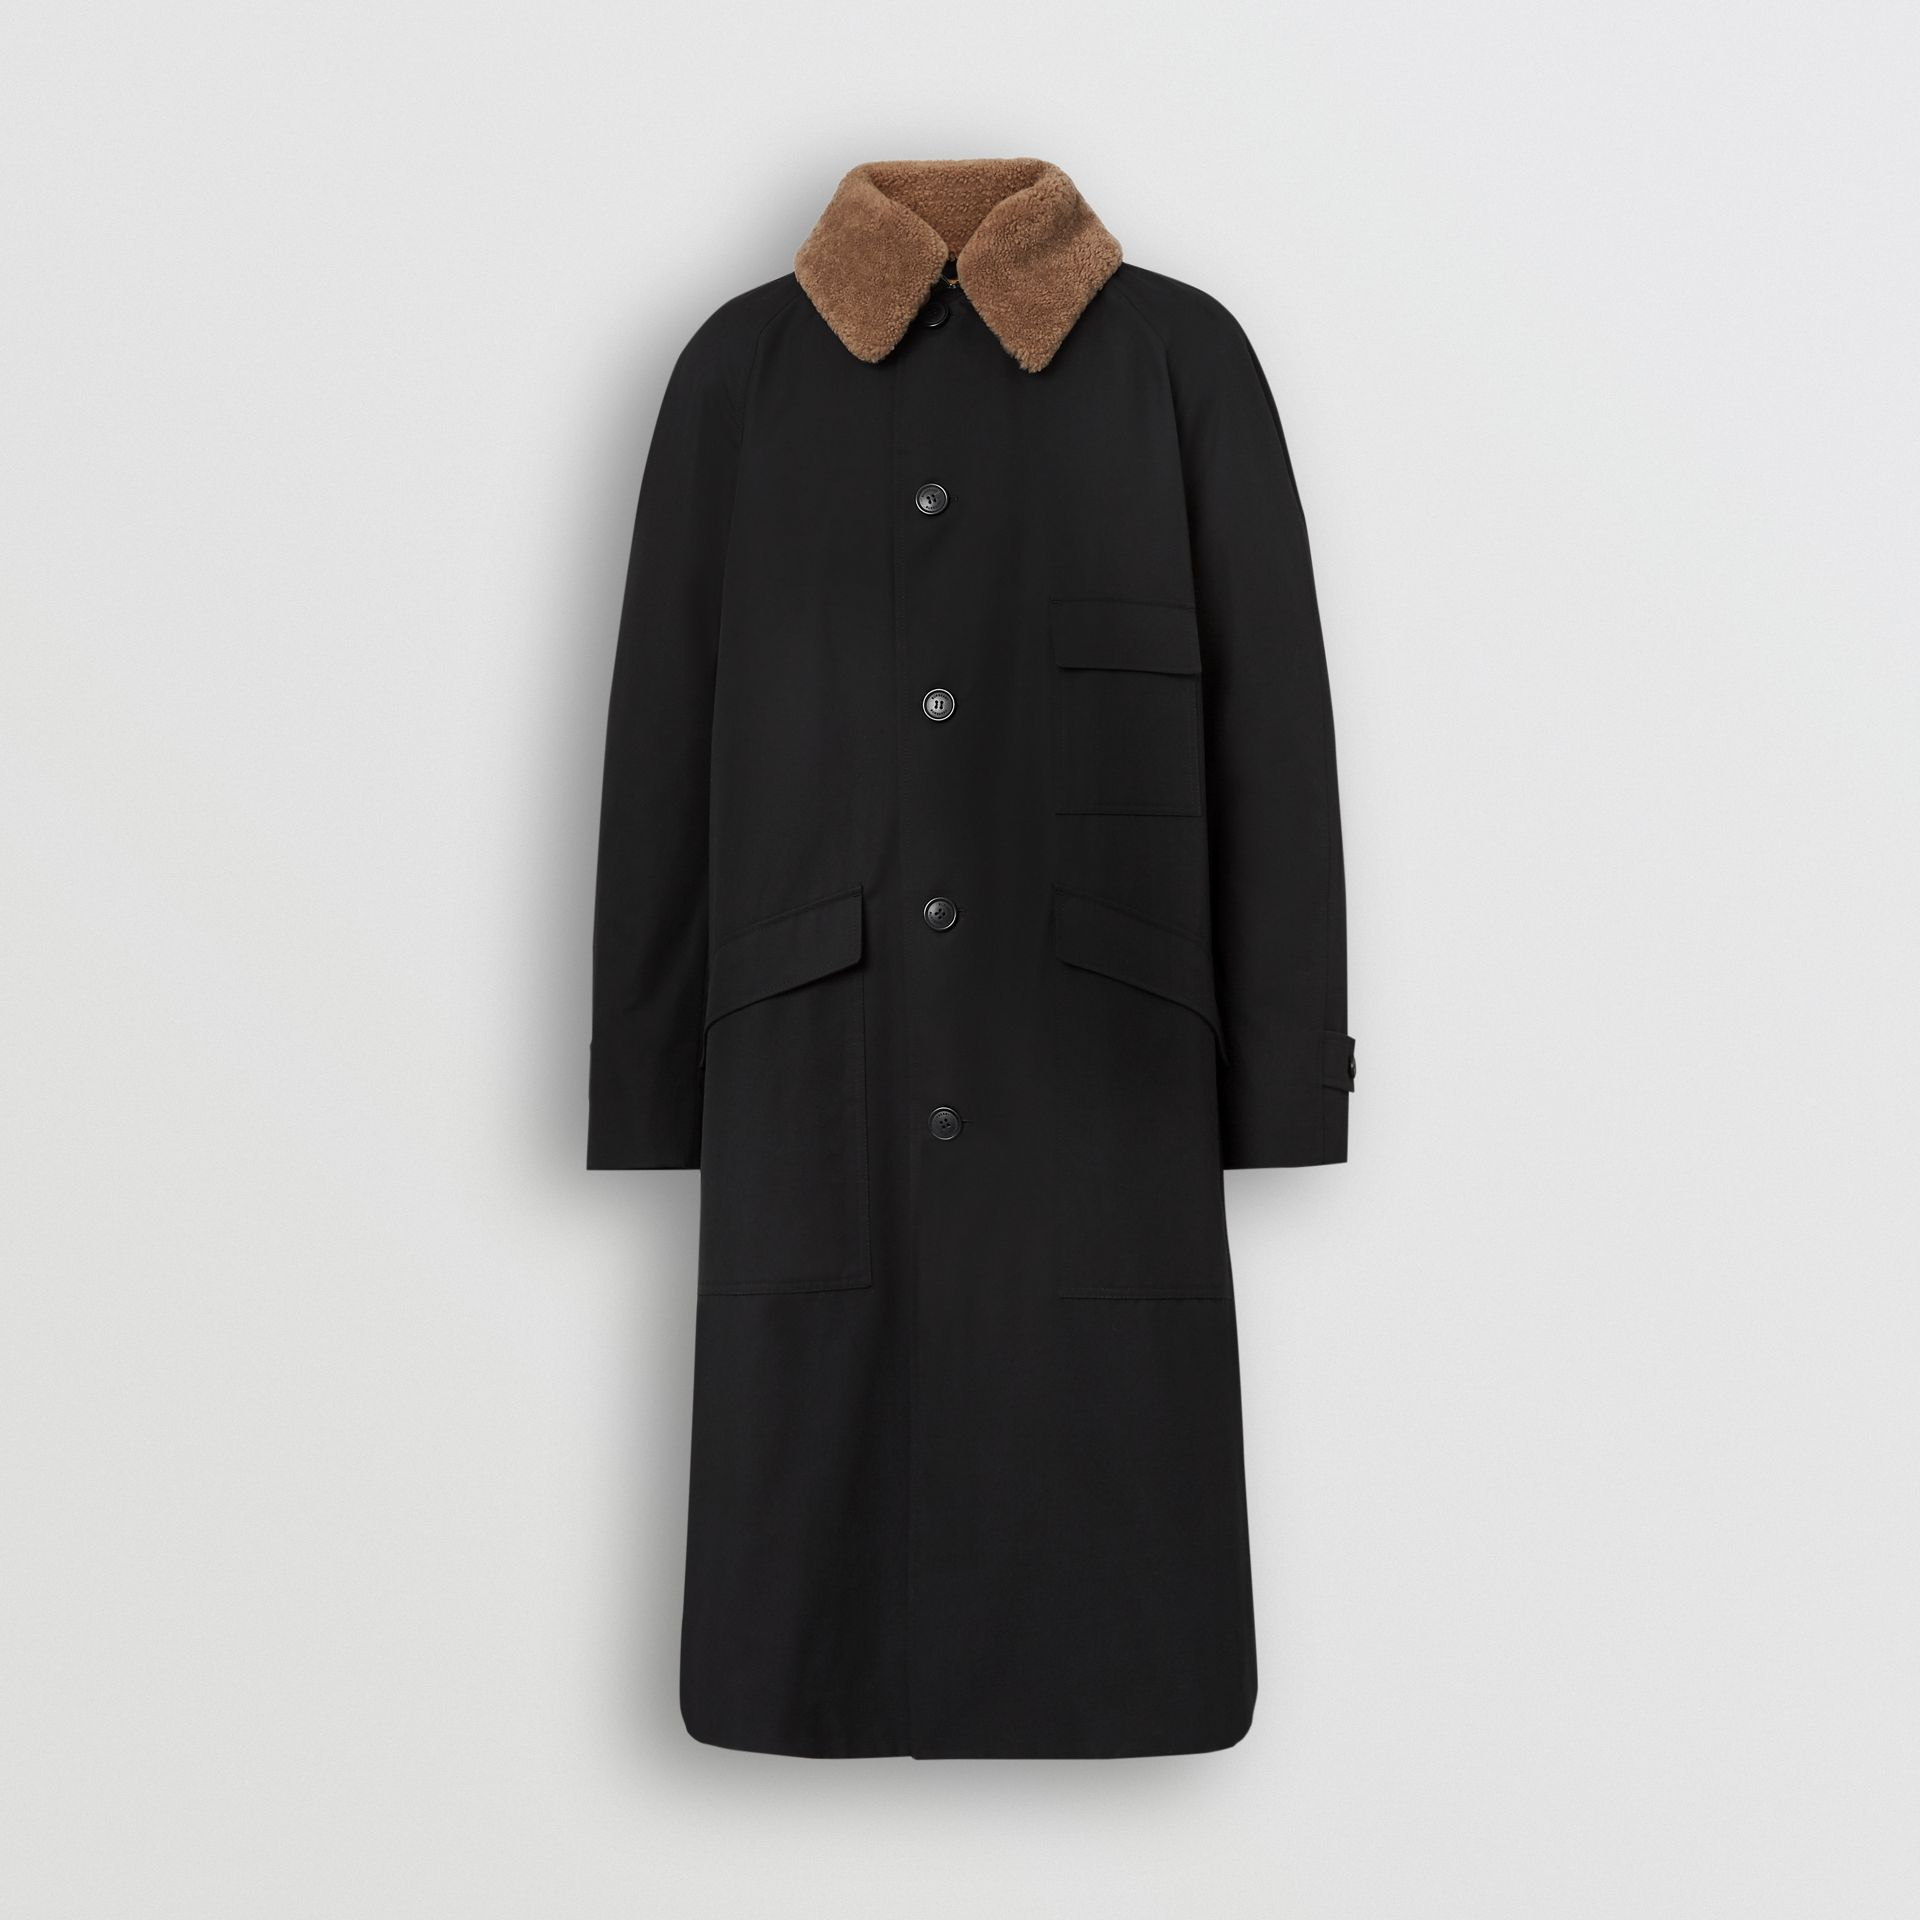 Contrast Shearling Collar Cotton Car Coat in Black - Men | Burberry Canada - gallery image 7